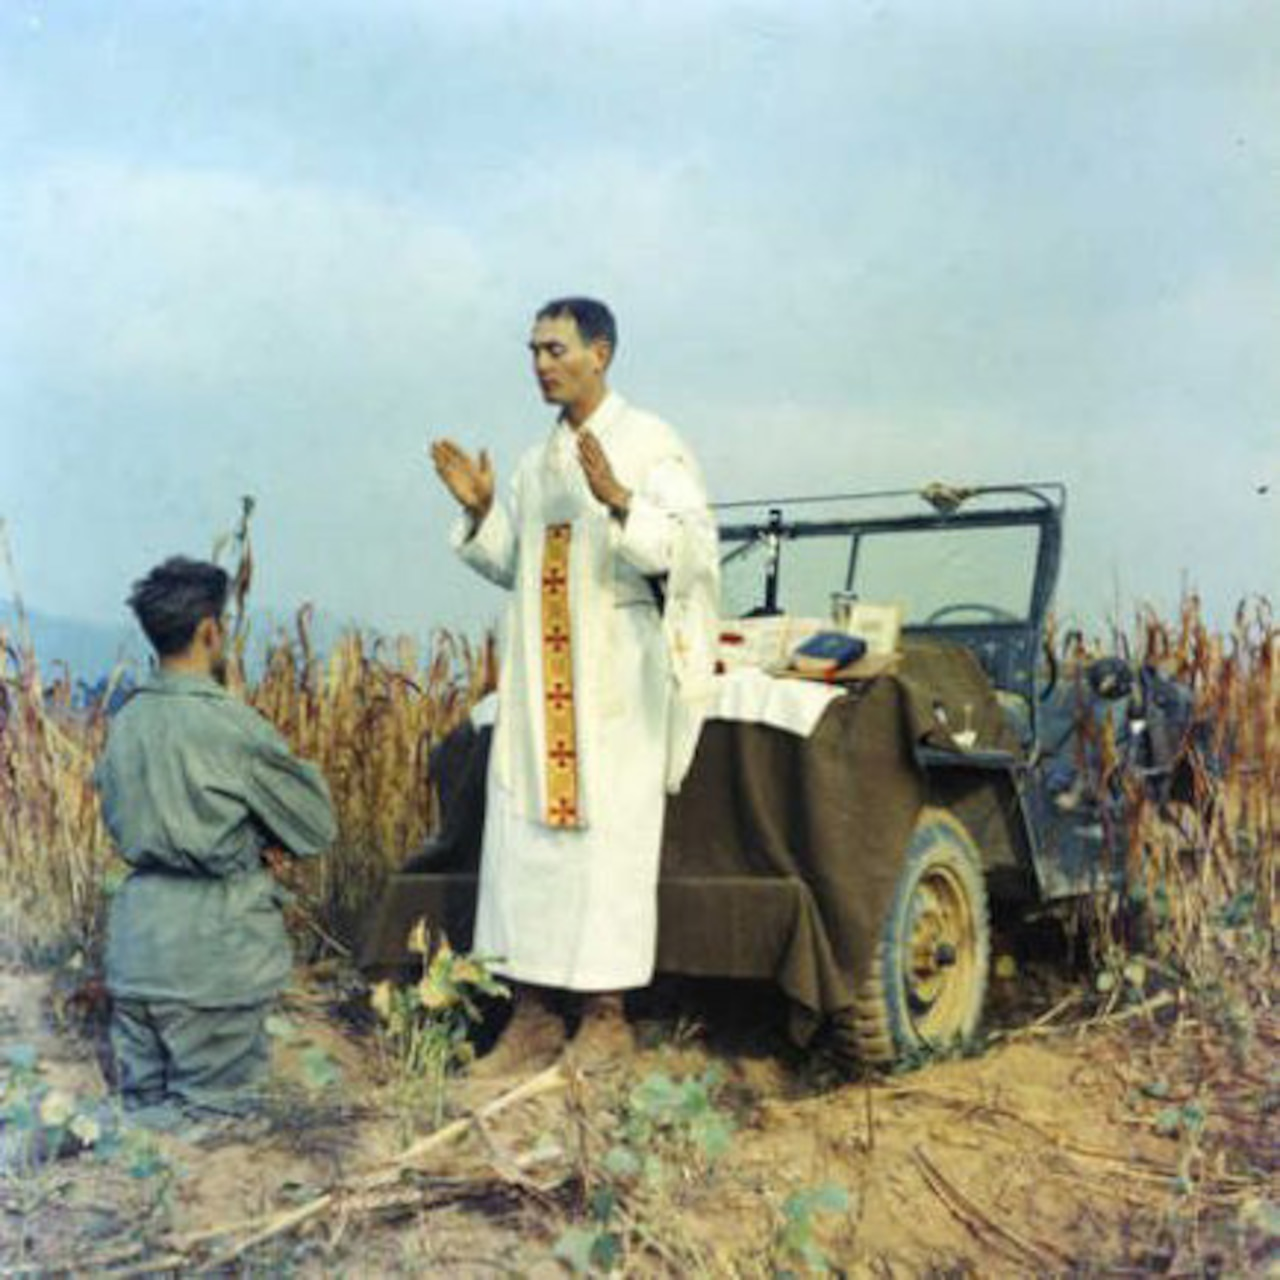 A priest blesses a kneeling man beside a Jeep in a field.